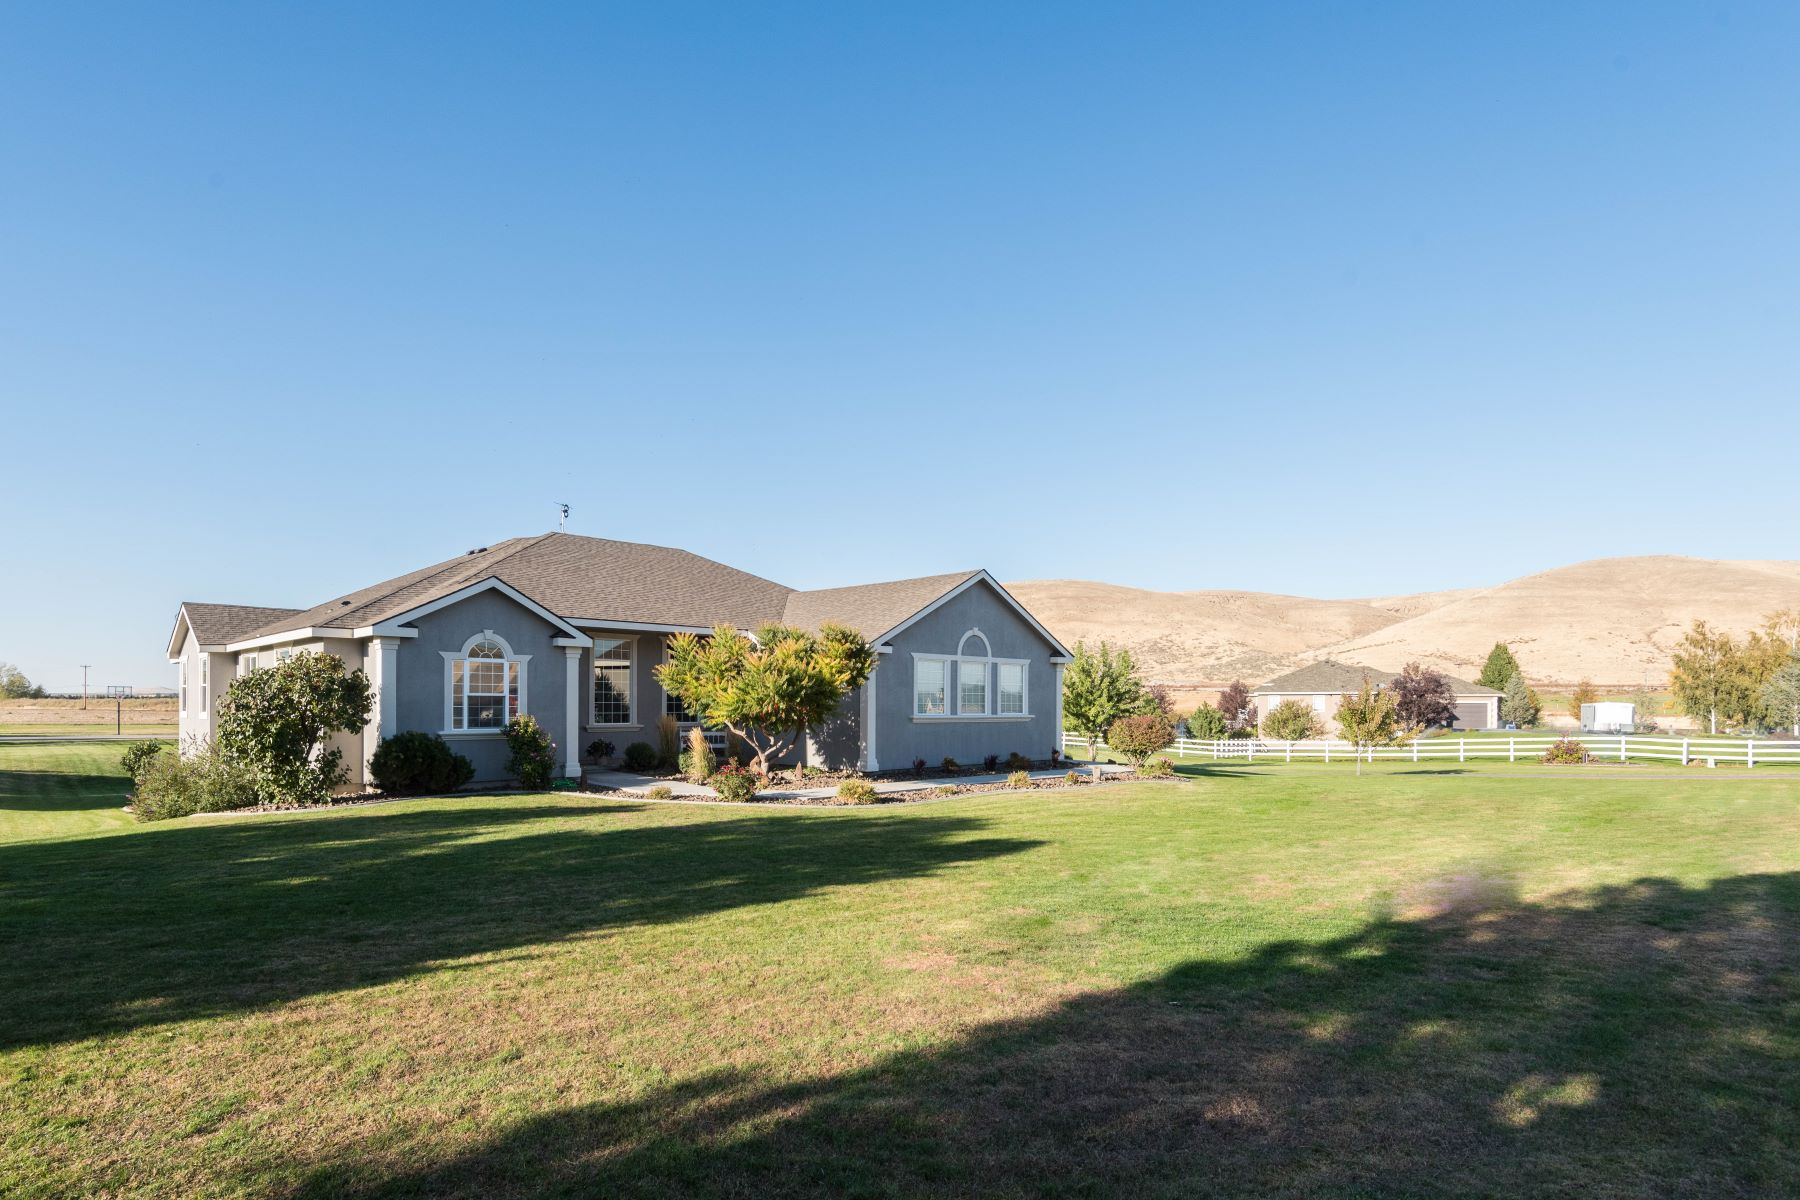 Tek Ailelik Ev için Satış at BEAUTIFUL CUSTOM HOME W/ACREAGE & VIEWS! 24603 S Sunset Meadows Loop Kennewick, Washington 99338 Amerika Birleşik Devletleri